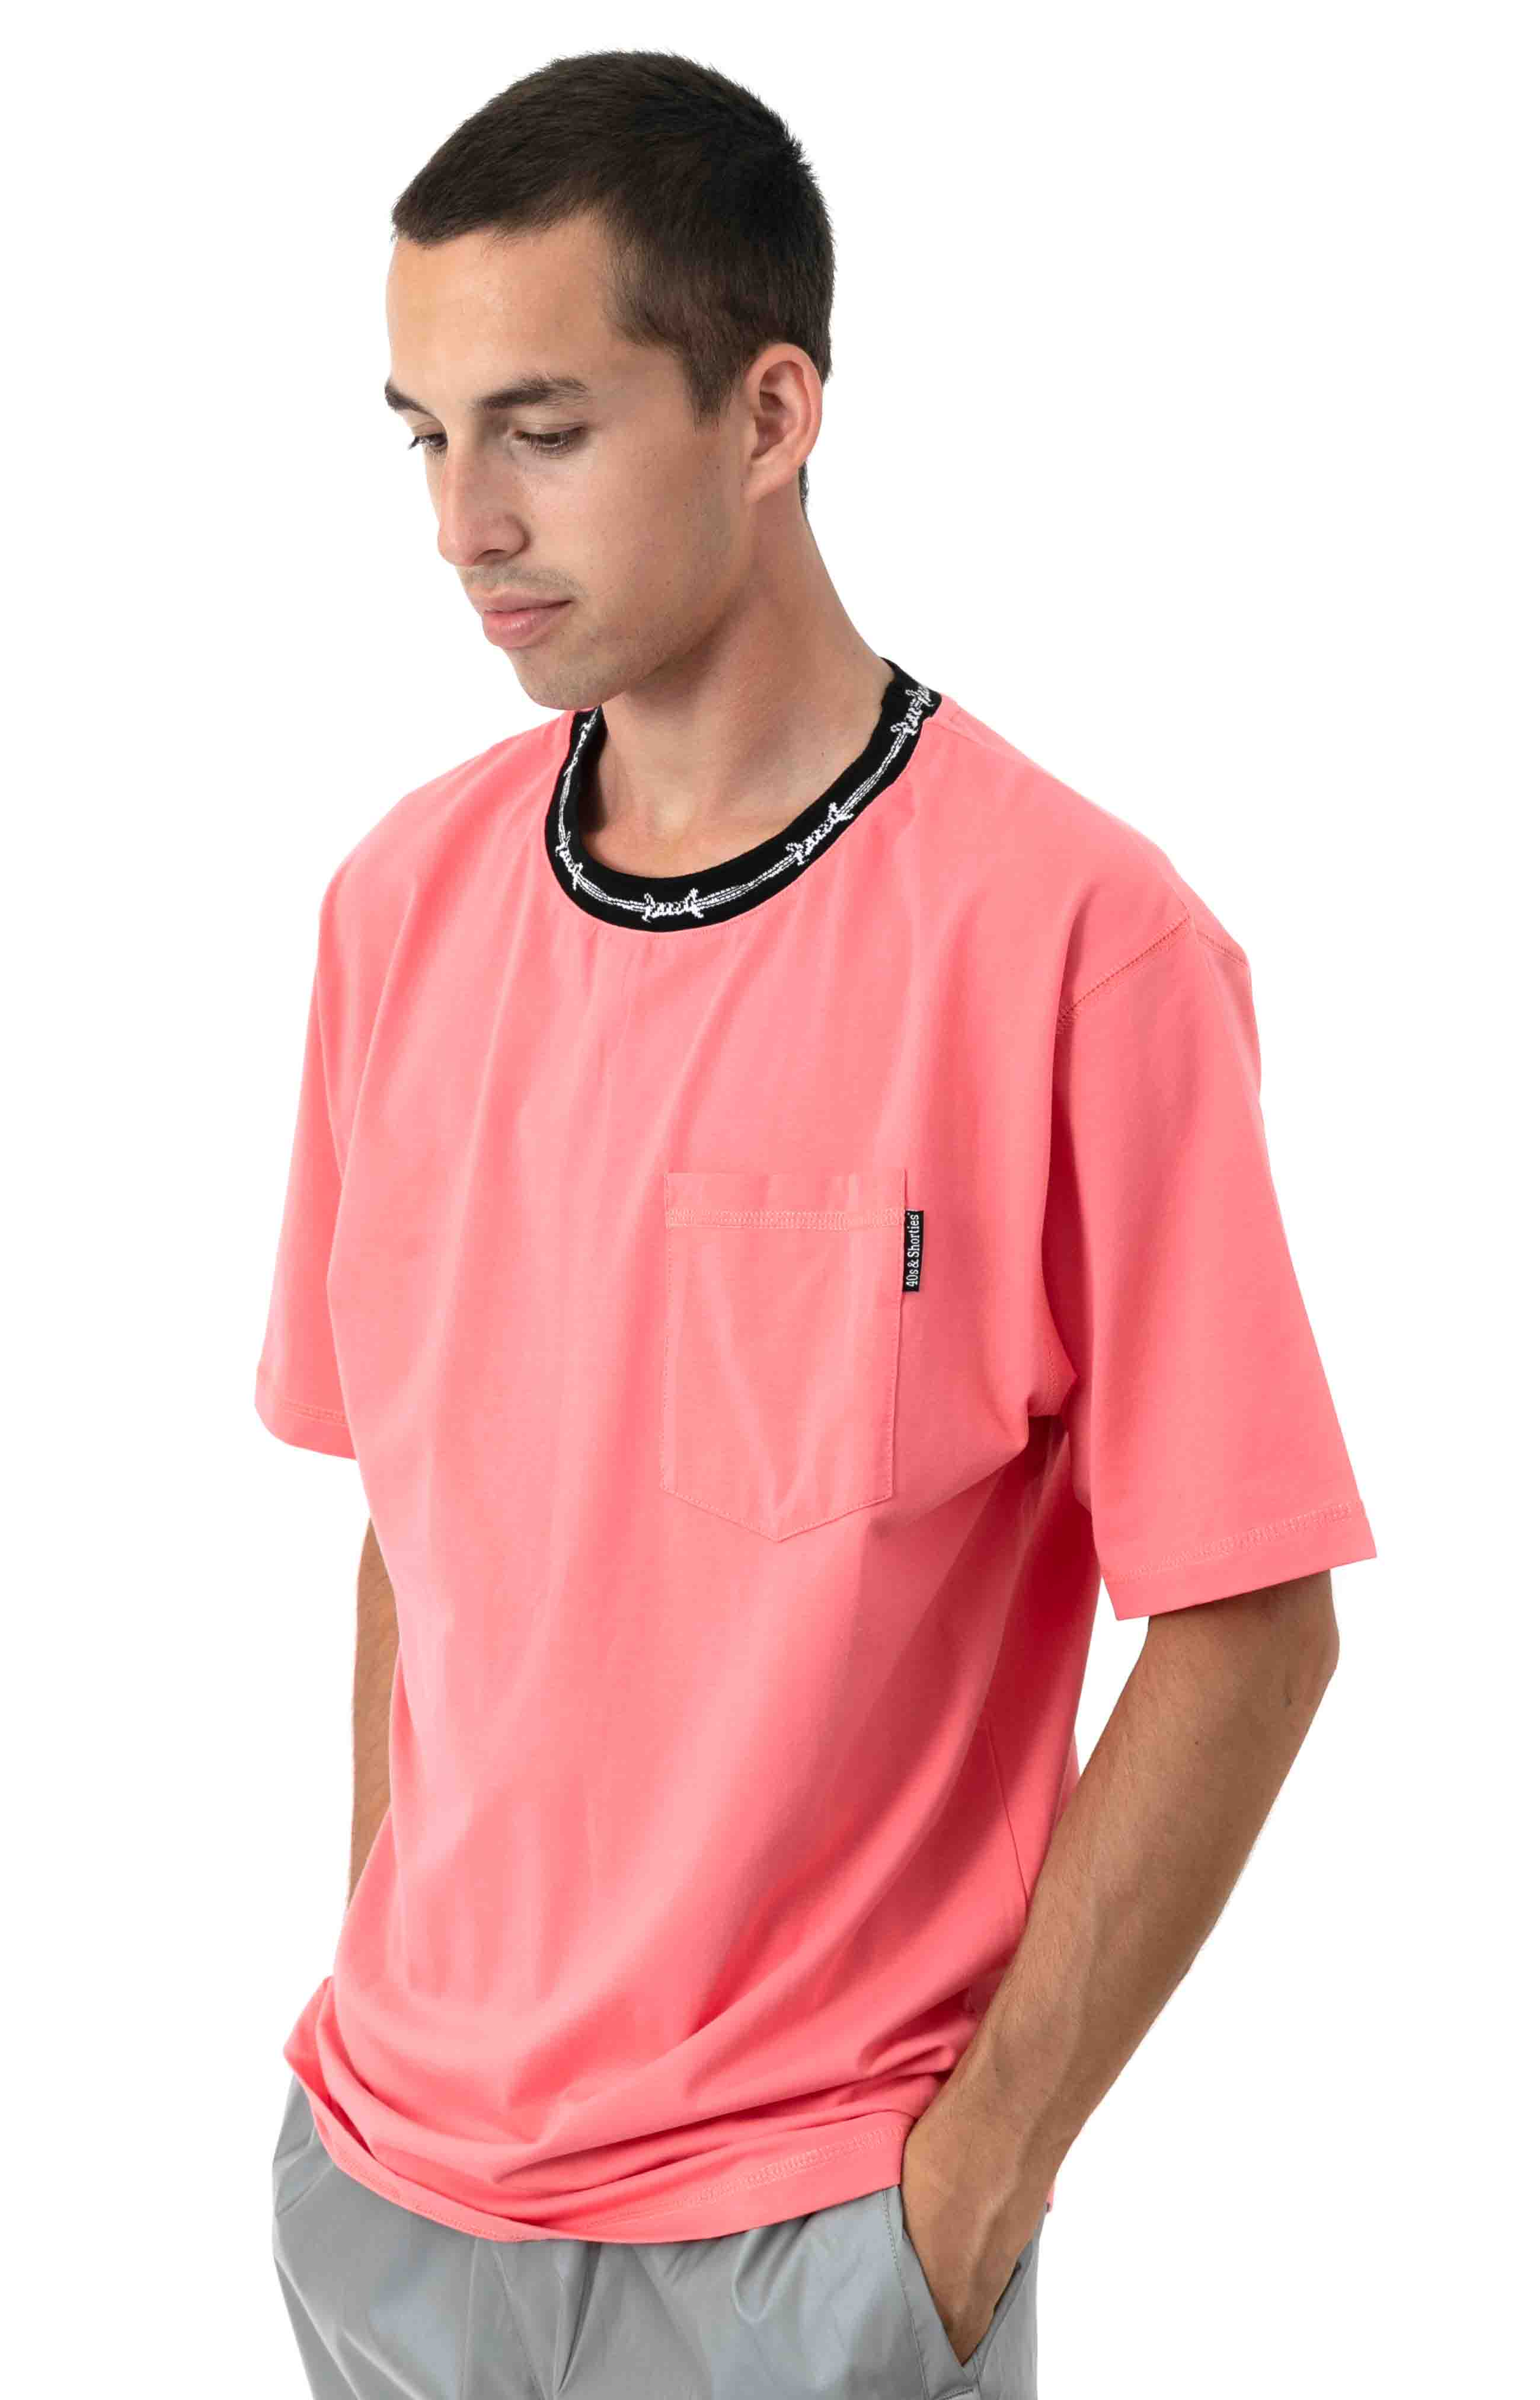 Barbwire Pocket T-Shirt - Coral 2